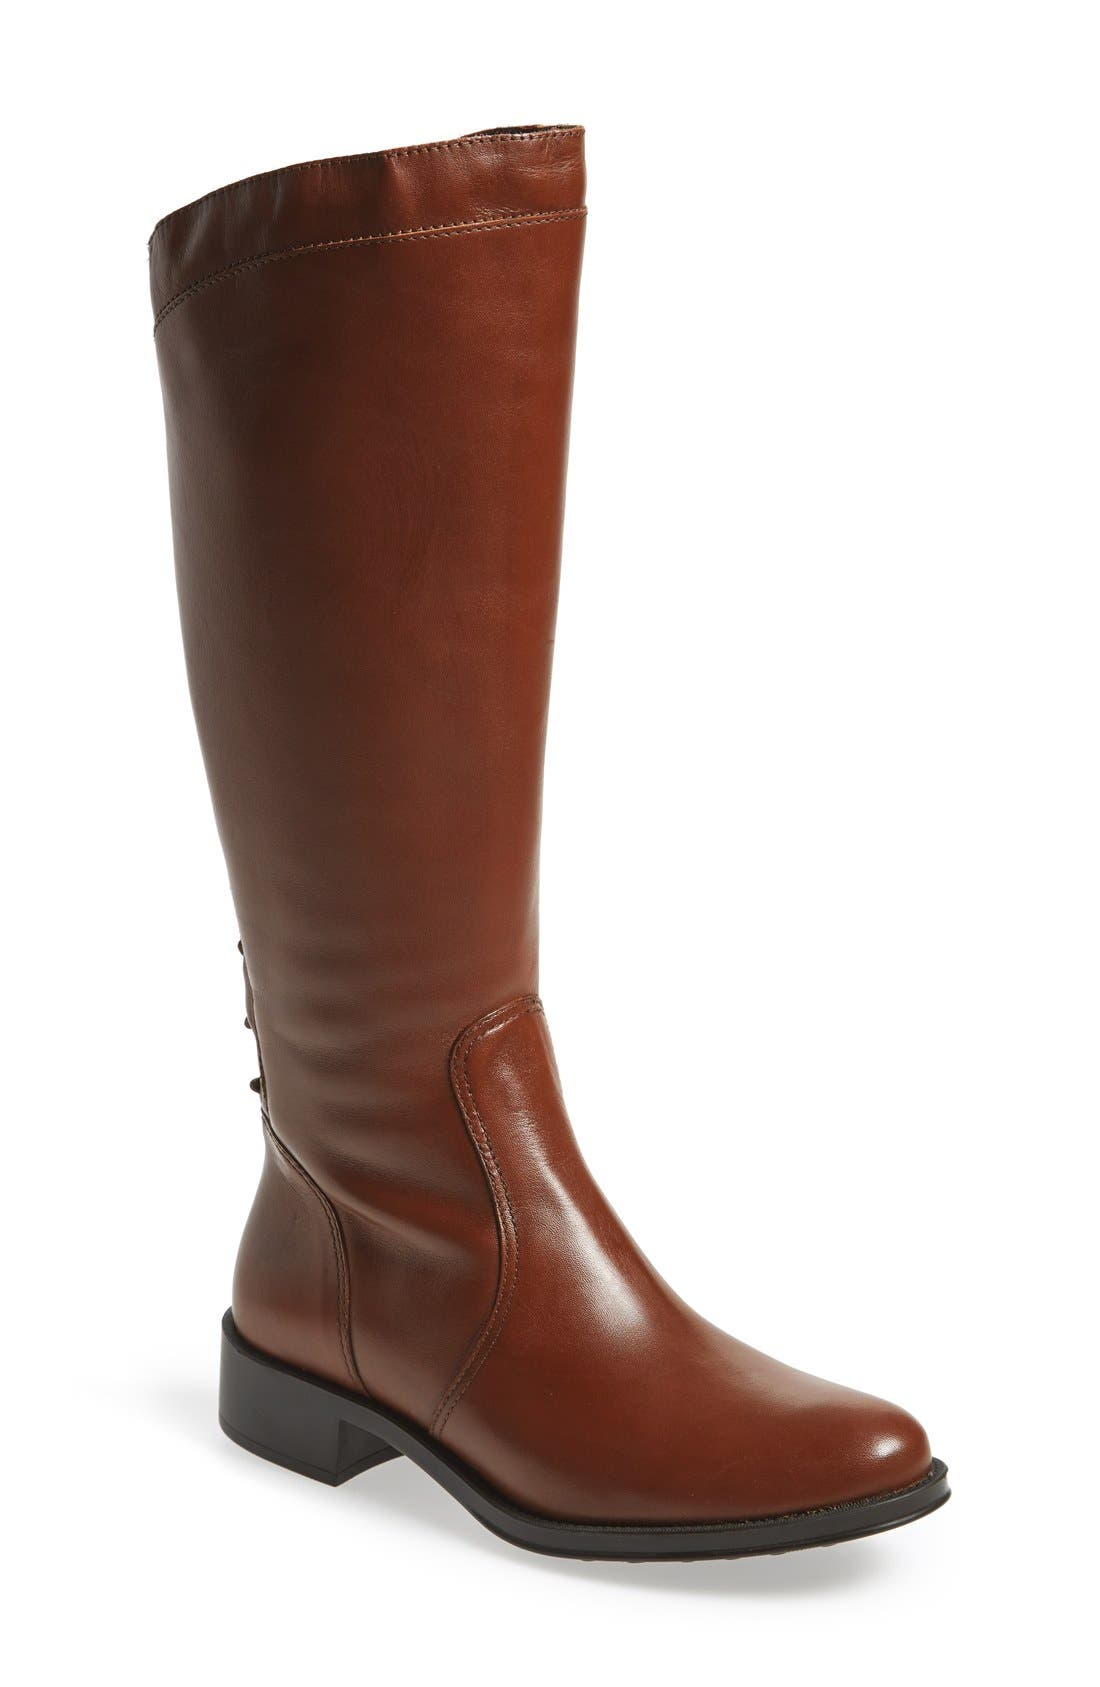 Alternate Image 1 Selected - André Assous 'Saddle Up' Waterproof Riding Boot (Women)